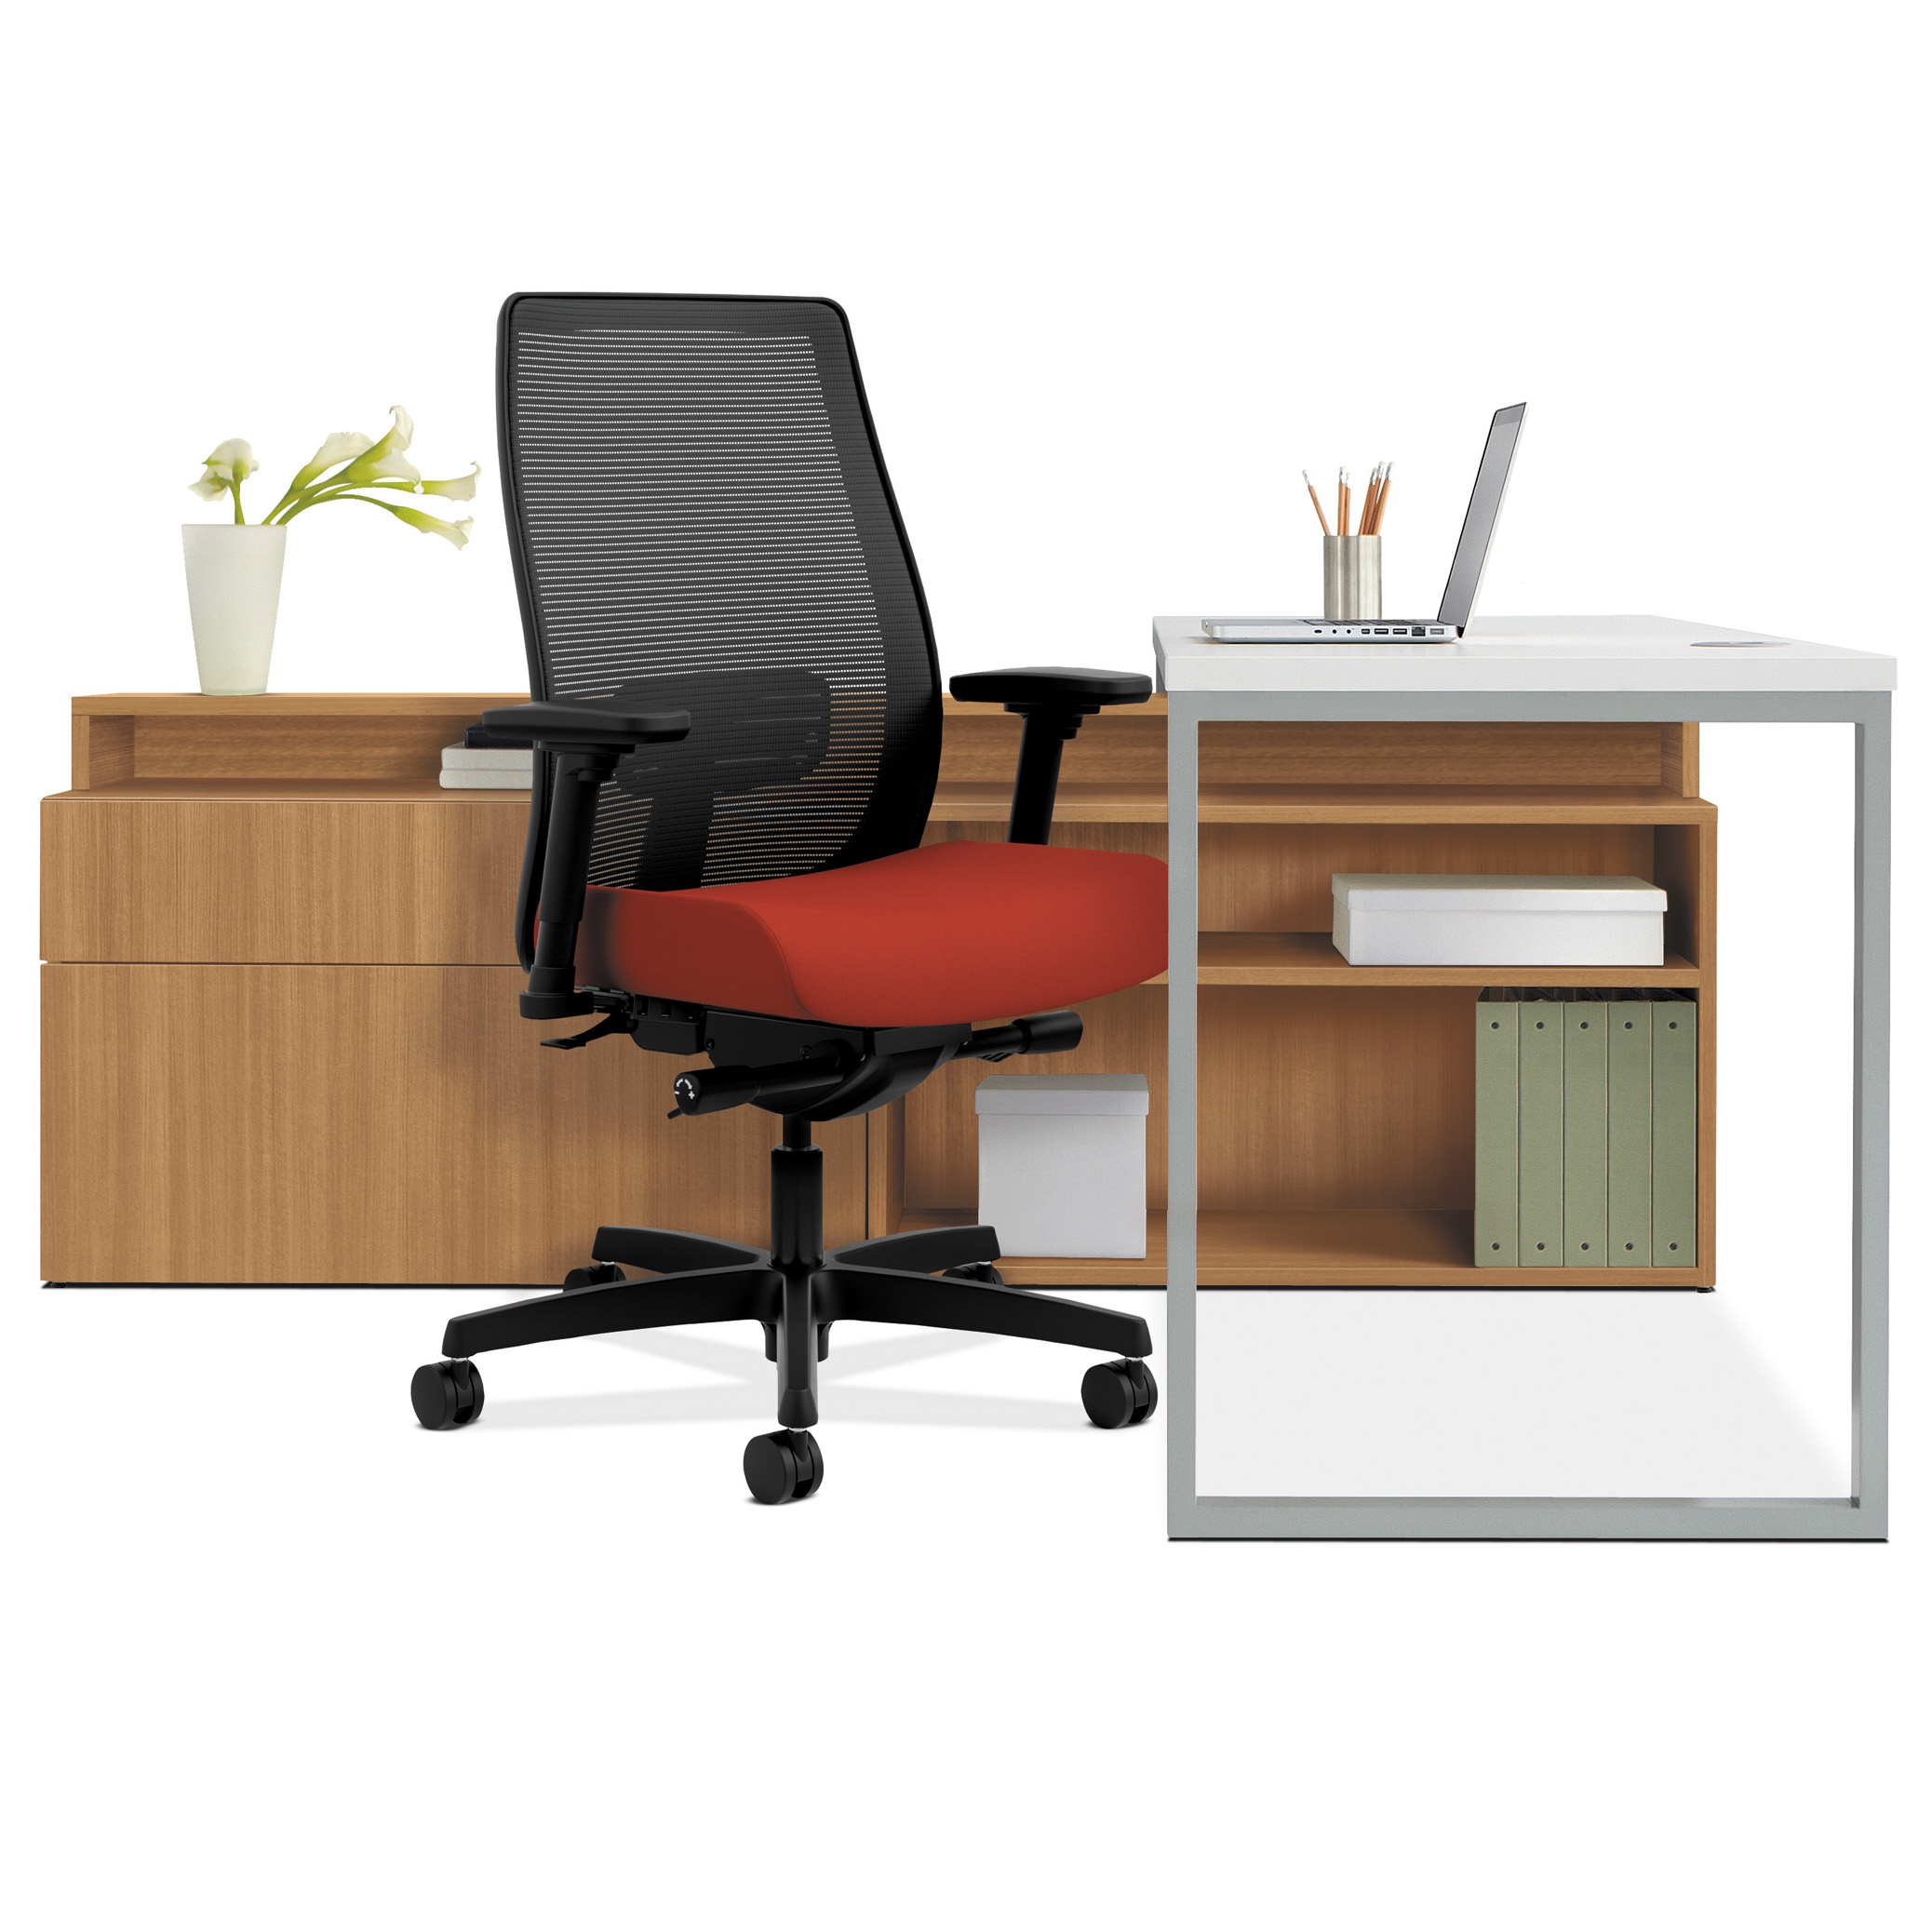 voi office furniture chicago new rental used desks